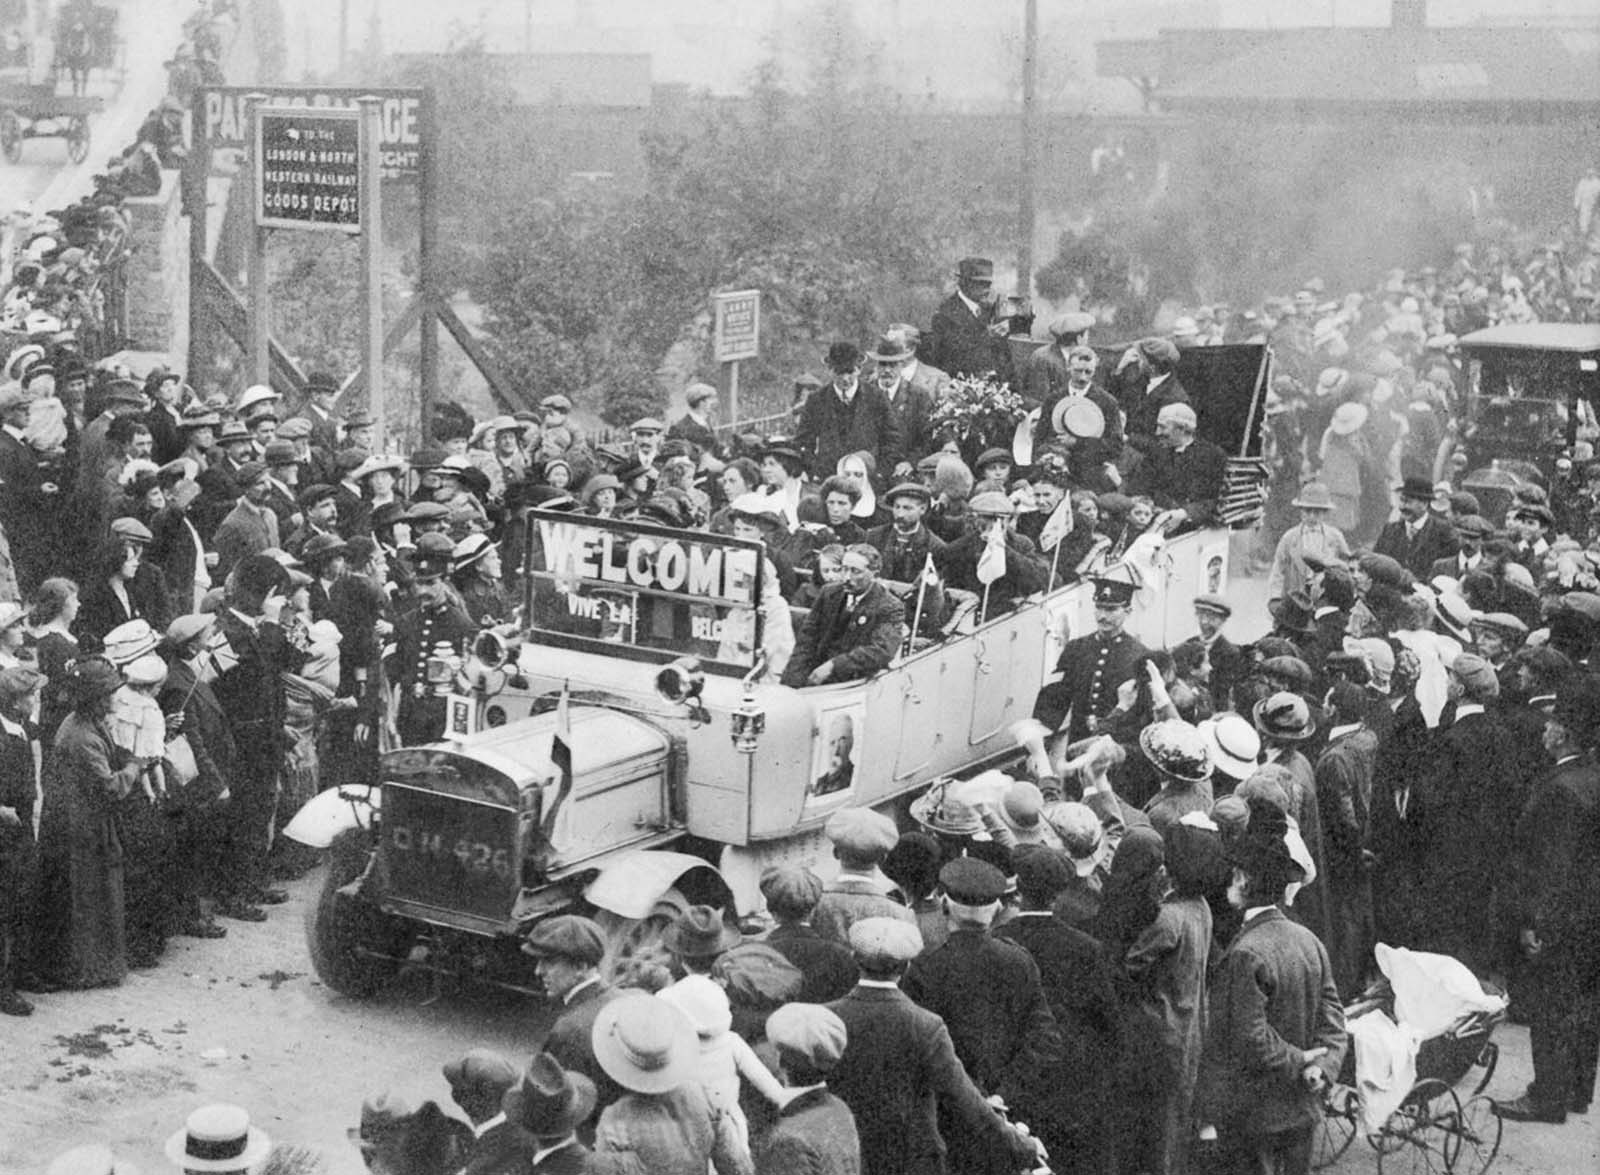 Belgian refugees arrive in the Welsh town of Rhyl. 1914.